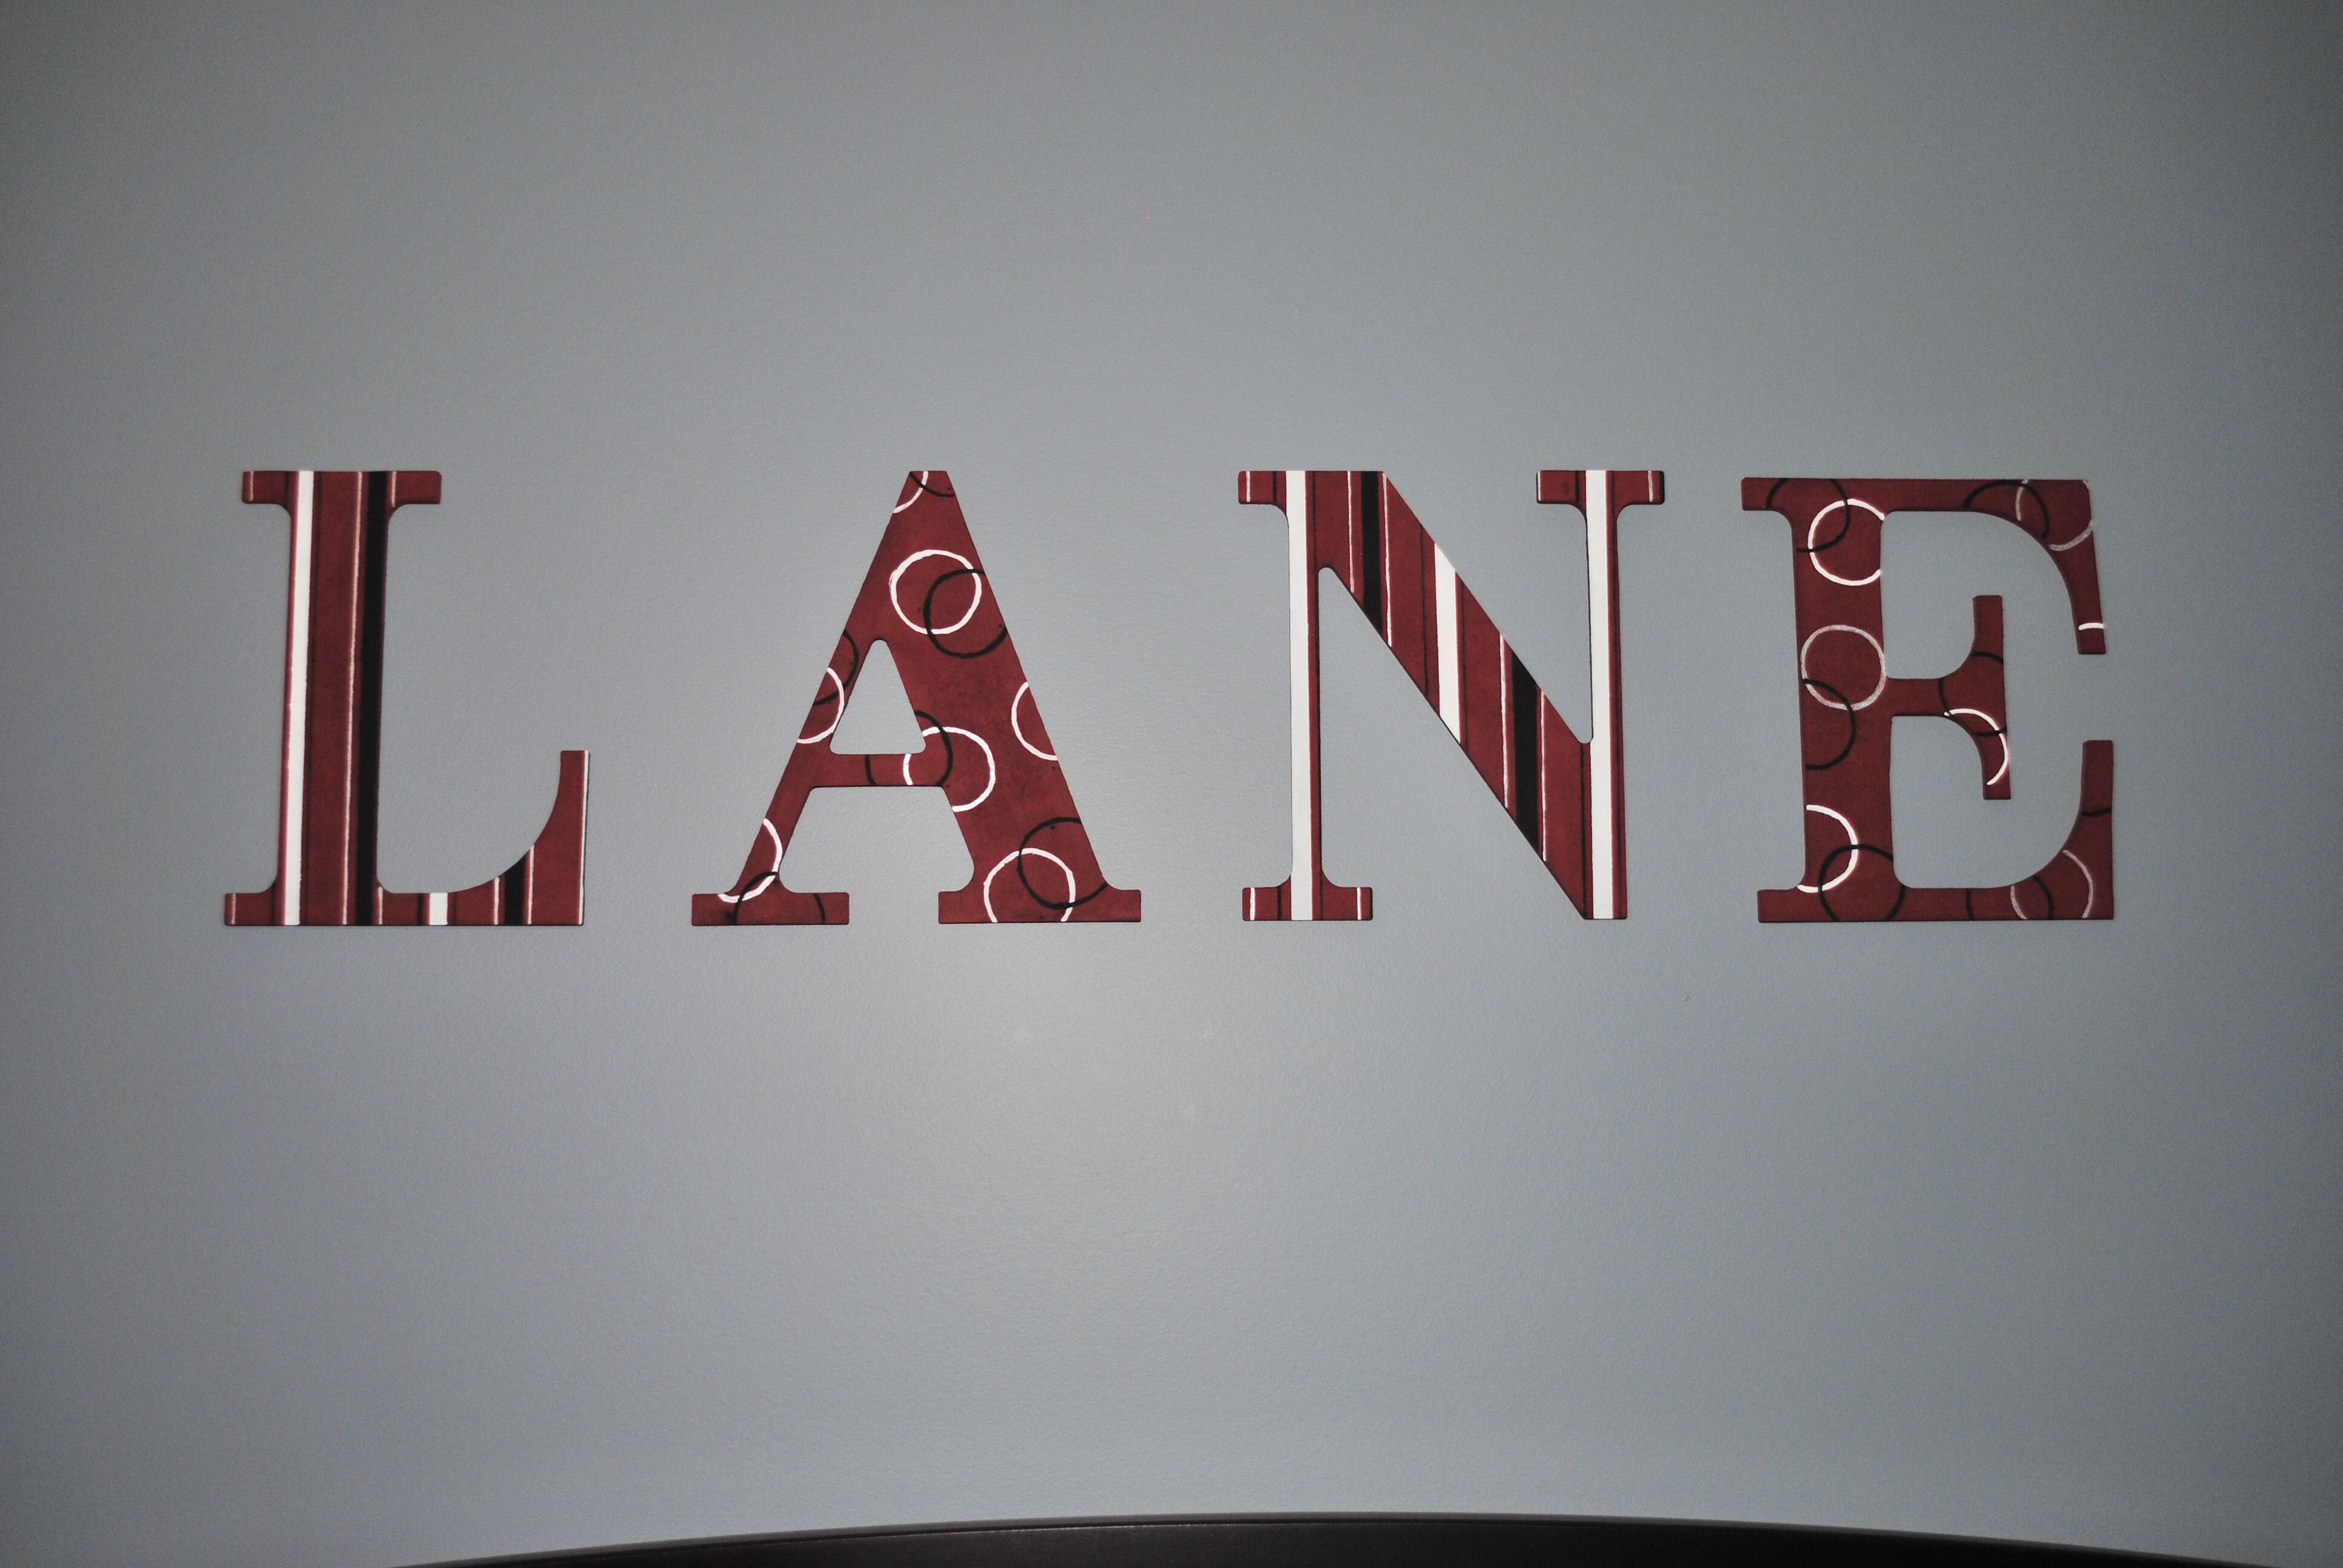 decorative wall letters Letters Pinterest